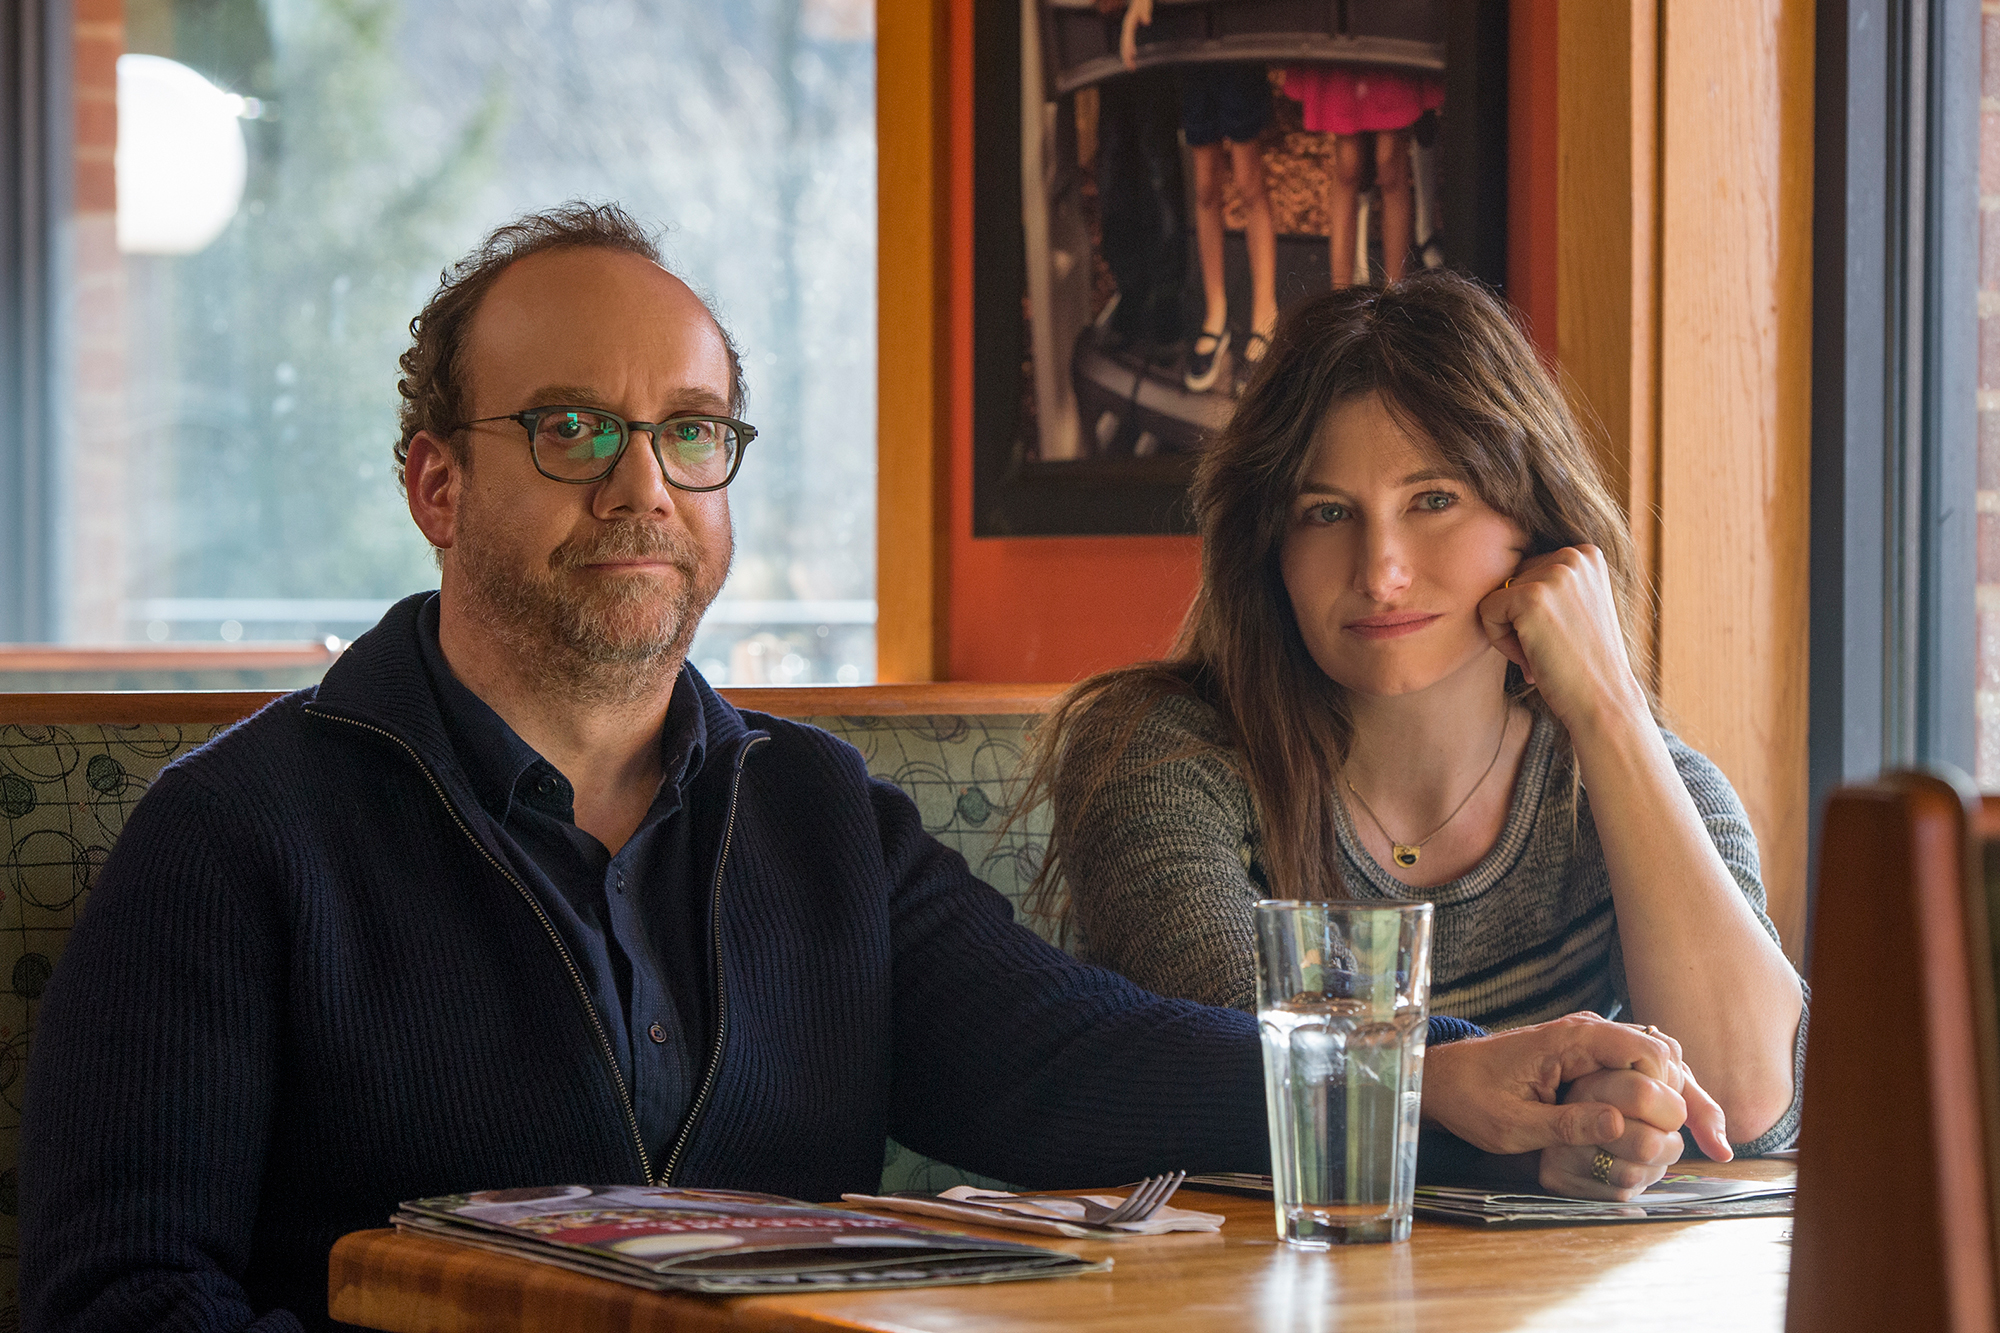 Private Life directed by Tamara Jenkins